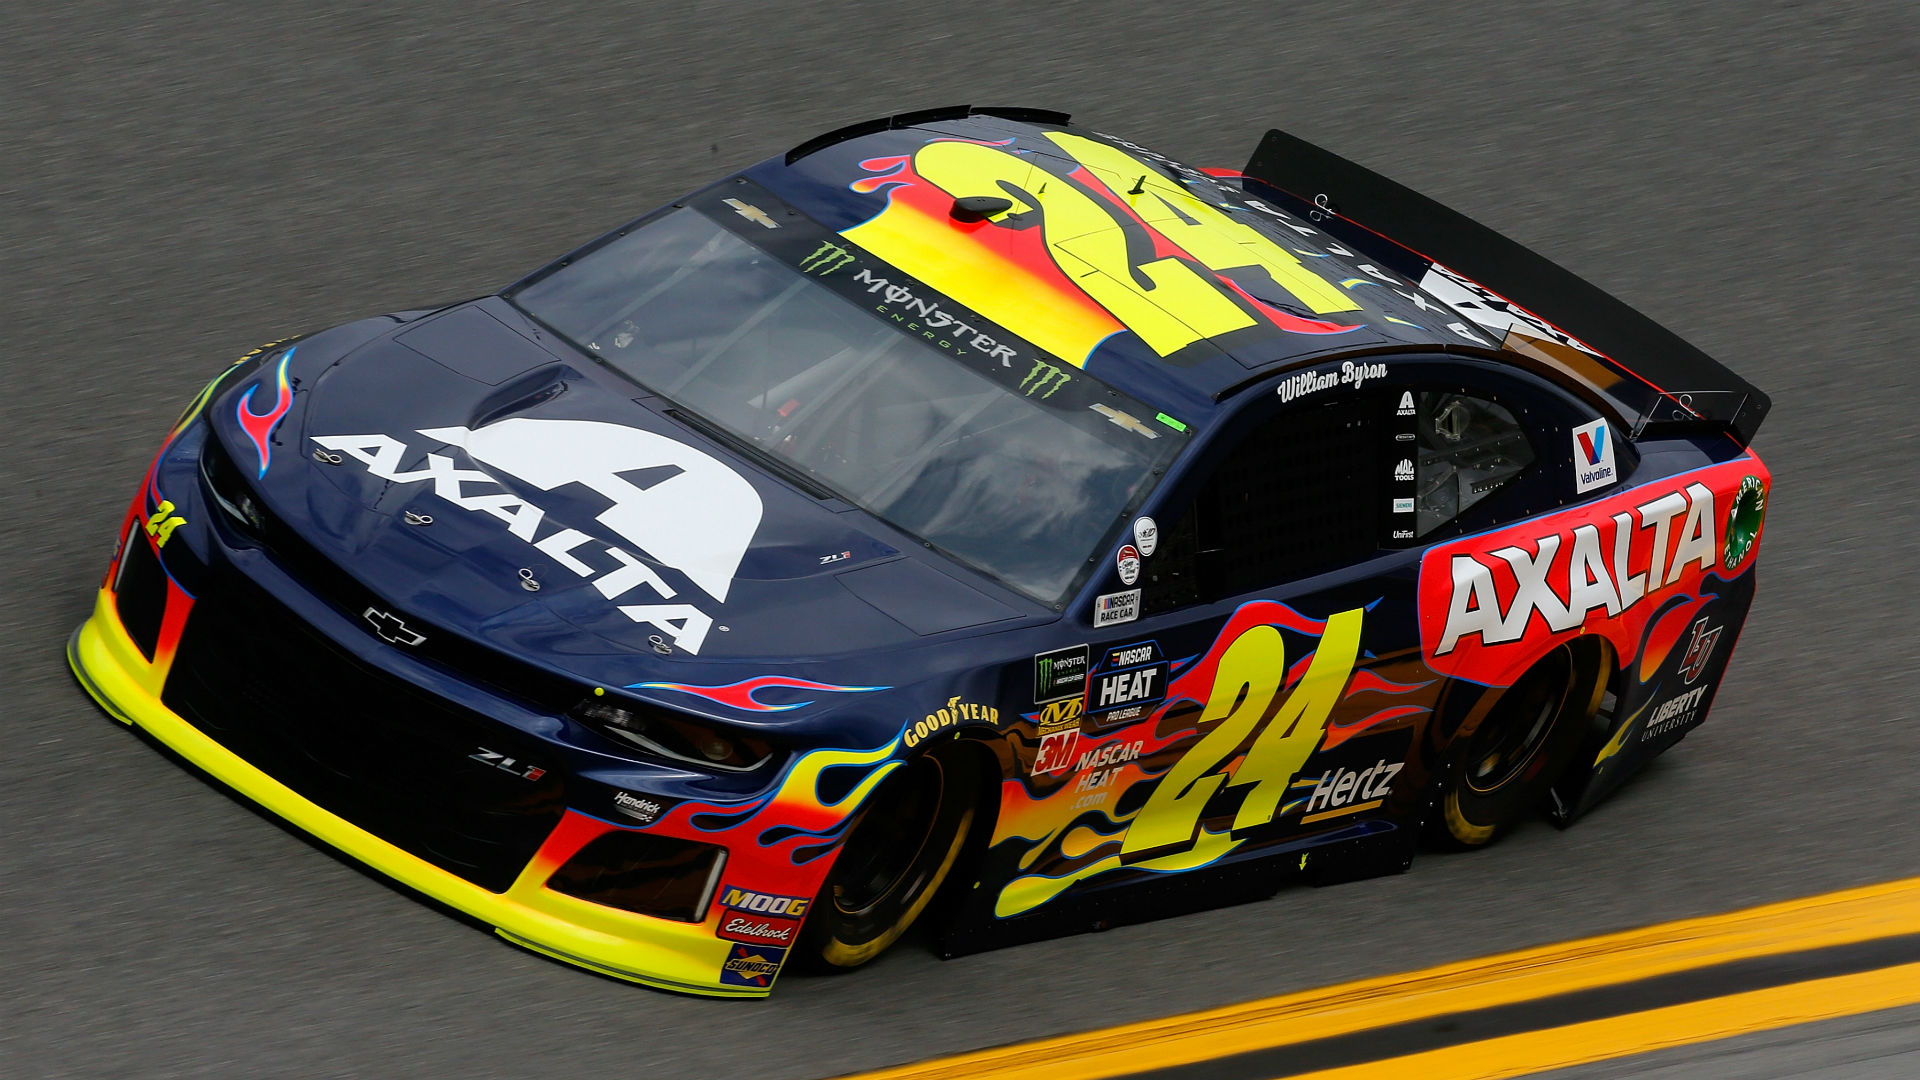 2019 Daytona 500 qualifying: William Byron, Alex Bowman to start from front row